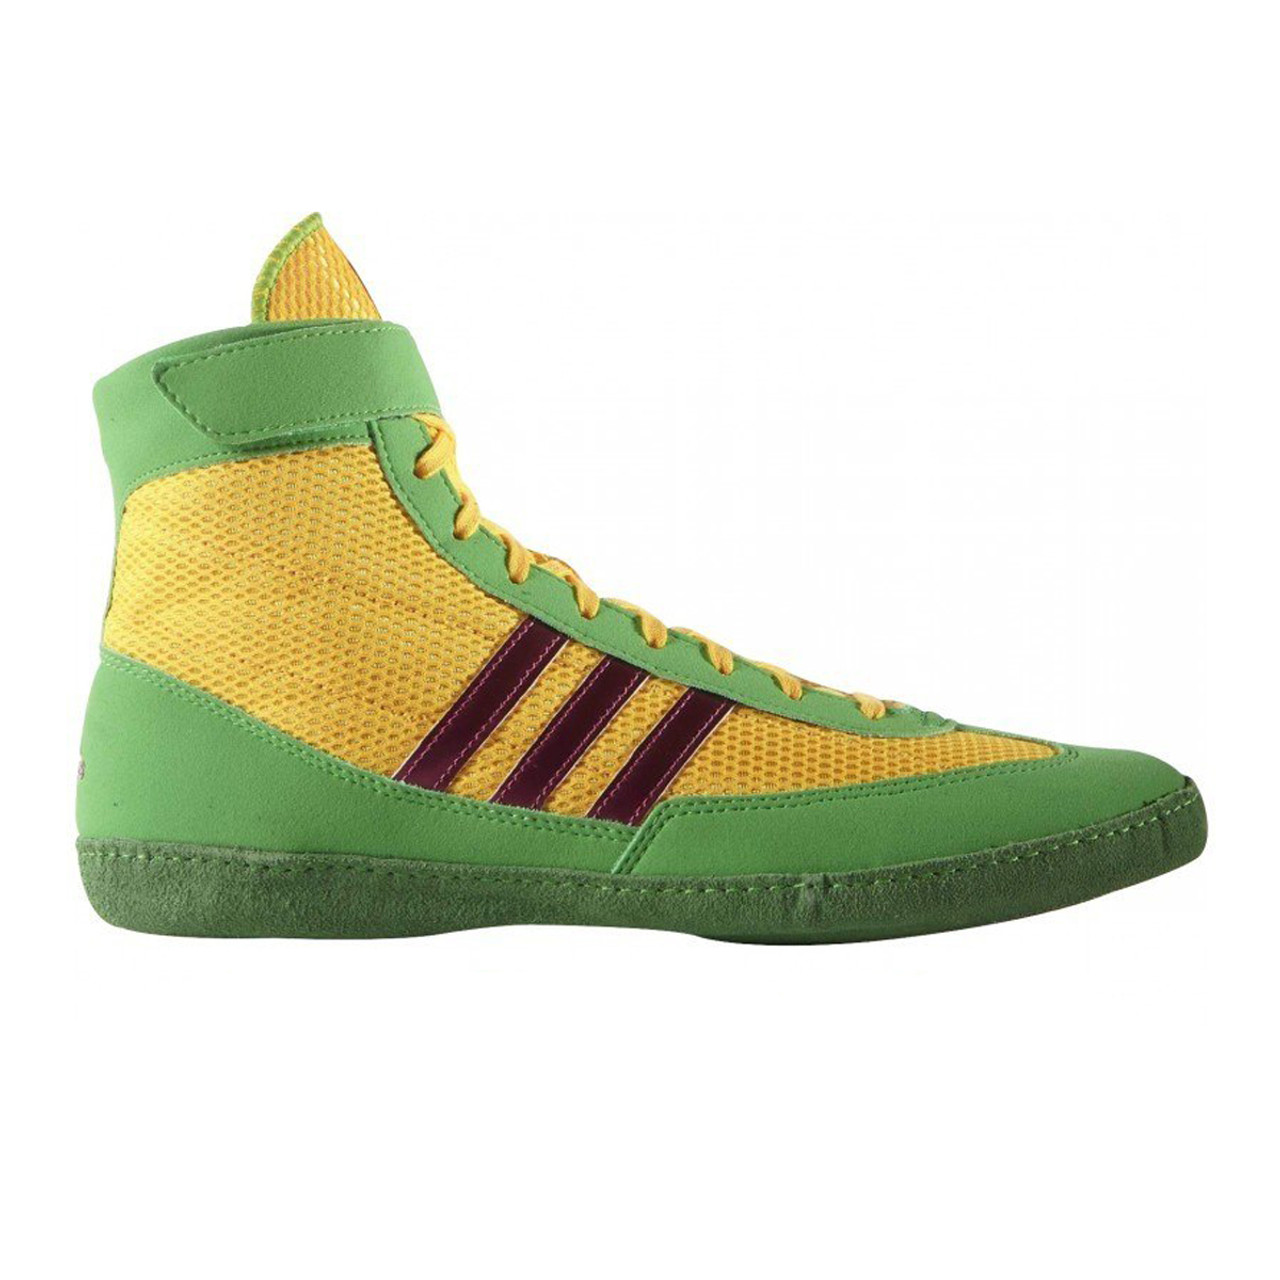 6242738b49ec Adidas Combat Speed 4 Wrestling Shoes AQ3059 -Gold Pink Lime ...